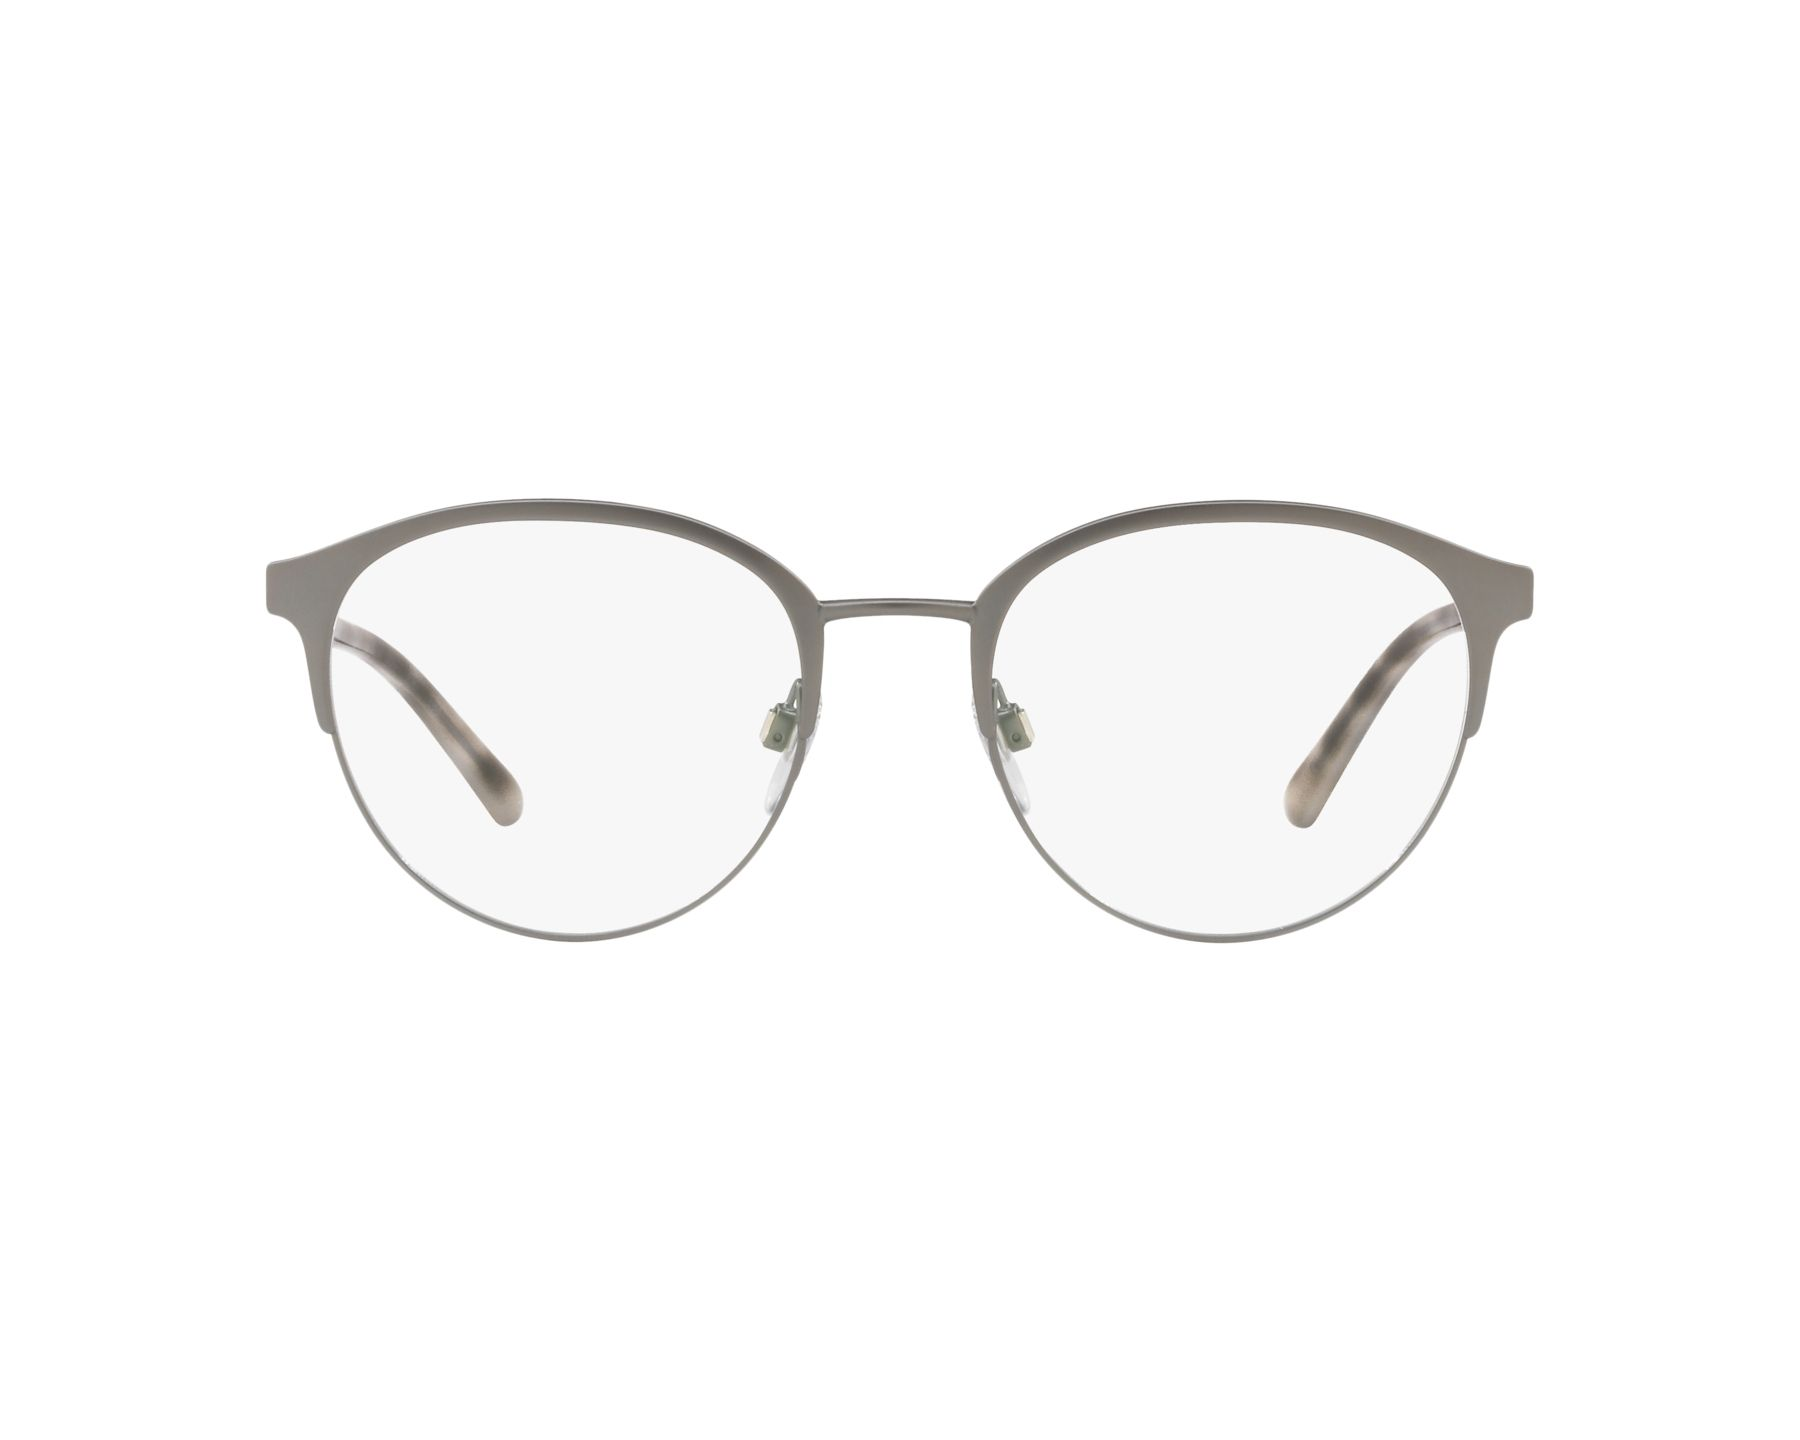 eyeglasses Burberry BE-1318 1014 51-19 Gun Grey 360 degree view 1